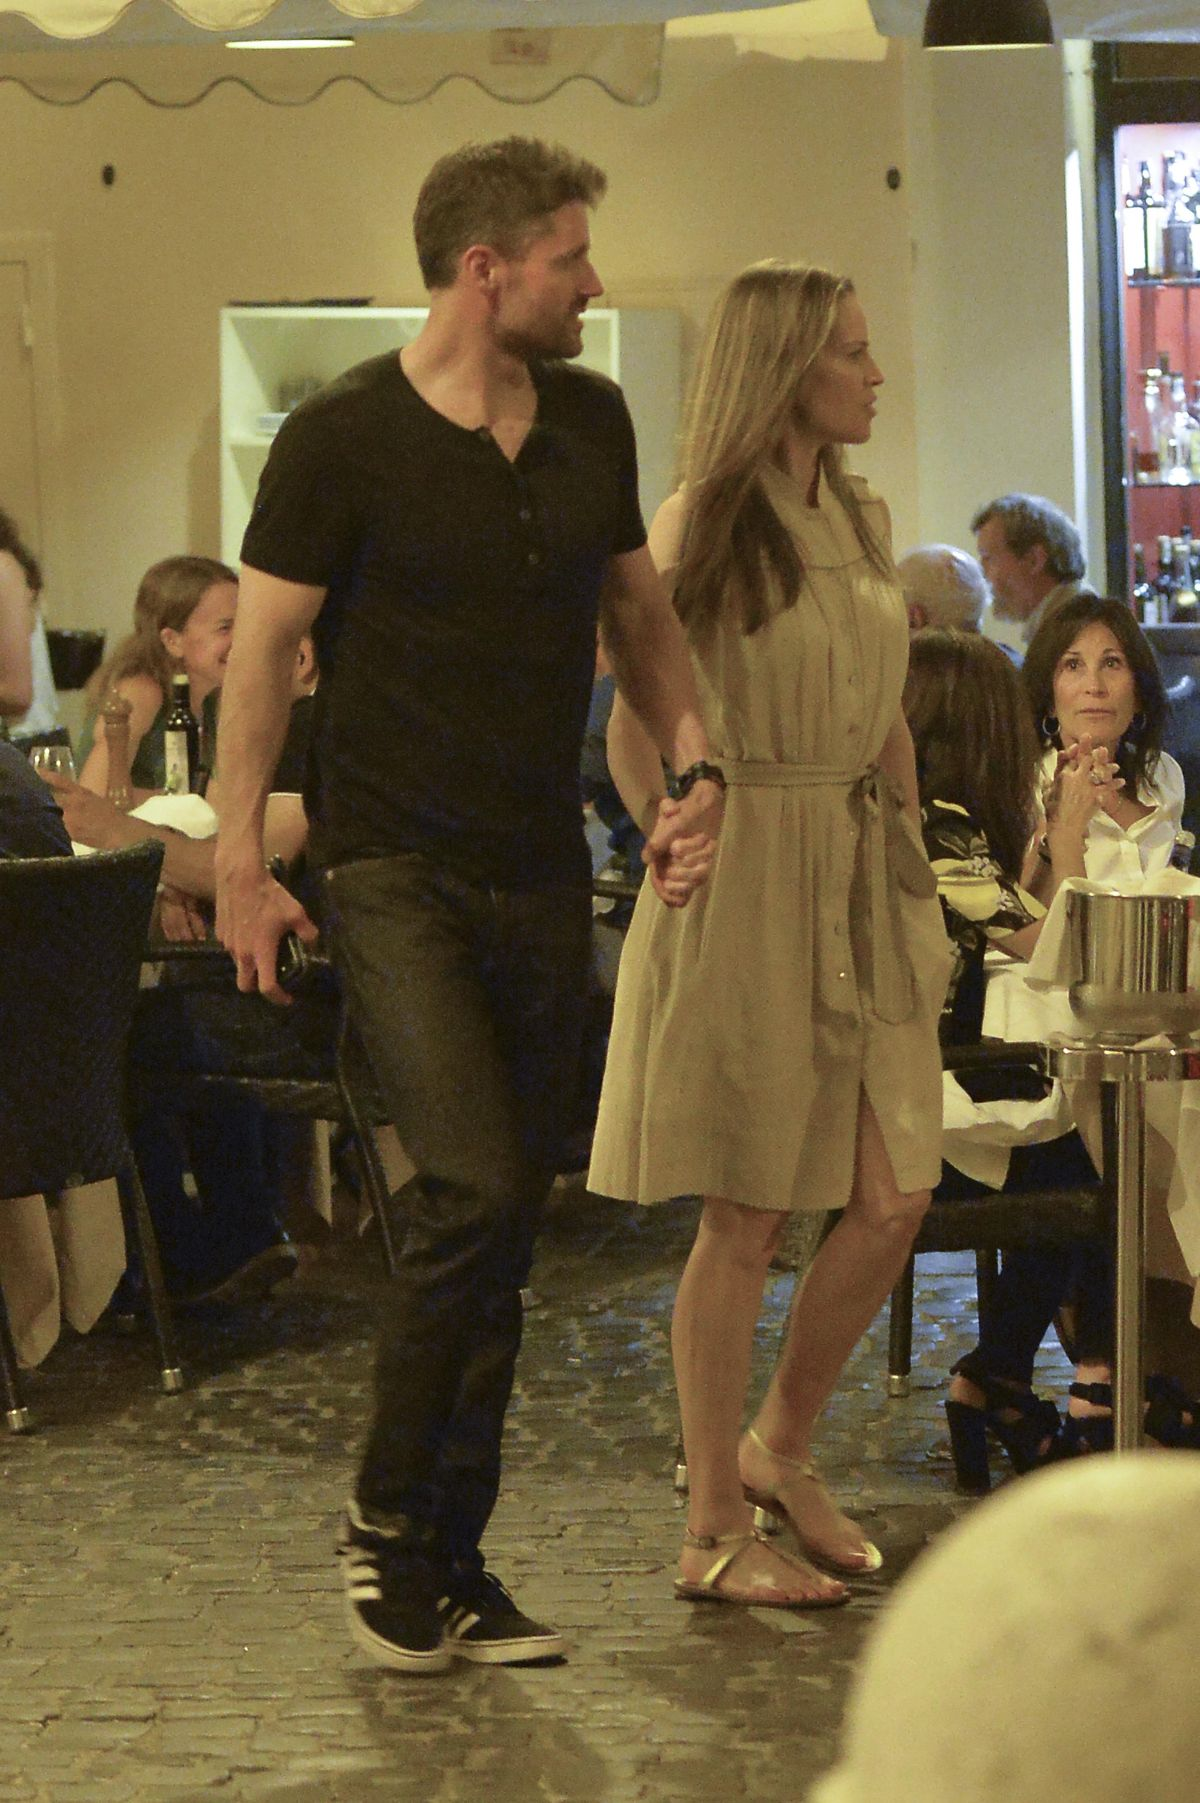 HILARY SWANK and Philip Schneider at Dinner at Pierluigi Restaurant in Rome 07/20/2017